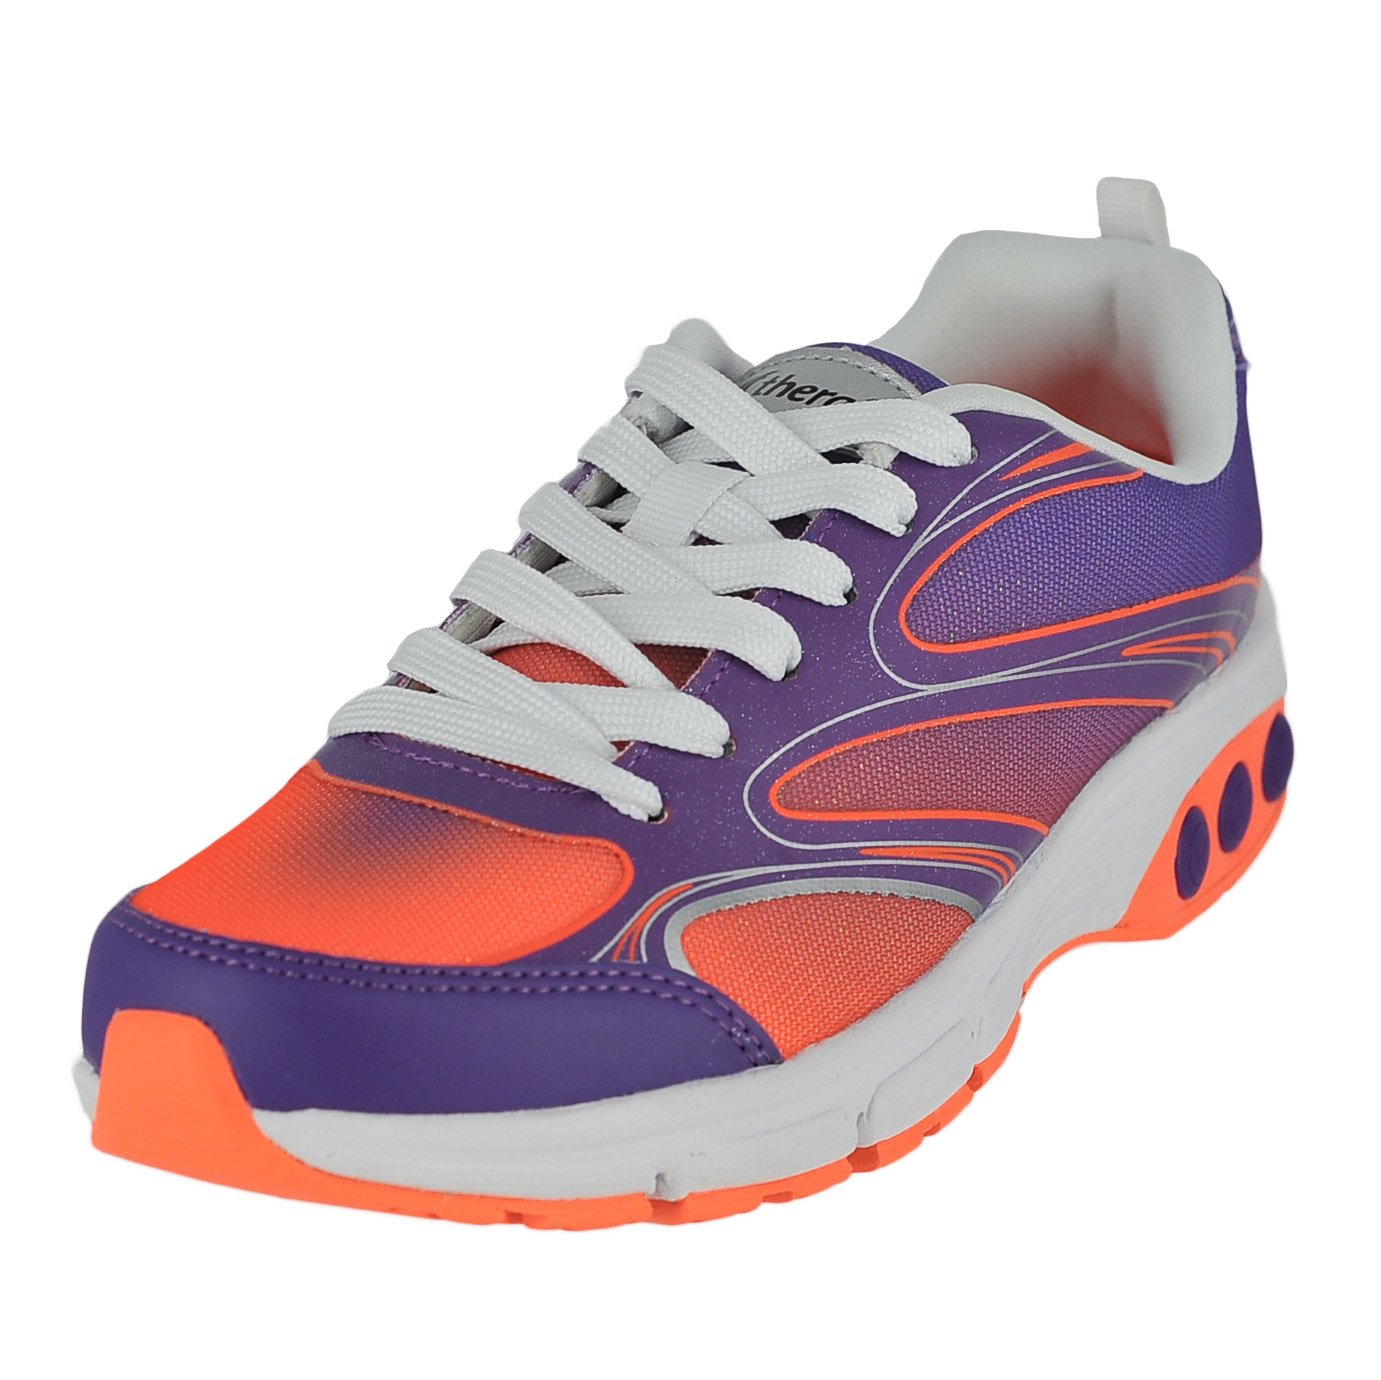 Therafit Shoes Where To Buy